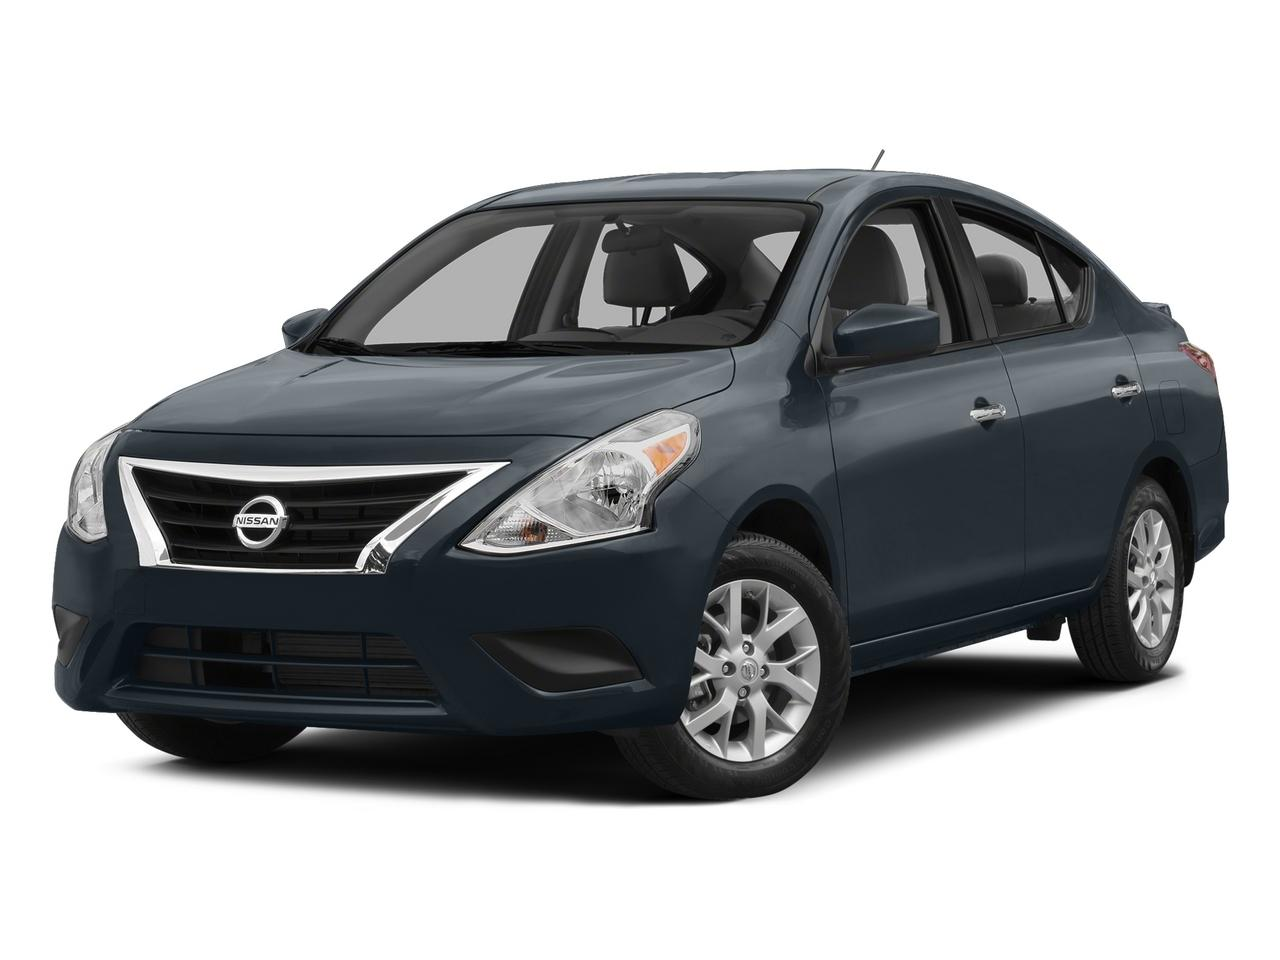 2015 Nissan Versa Vehicle Photo in Killeen, TX 76541